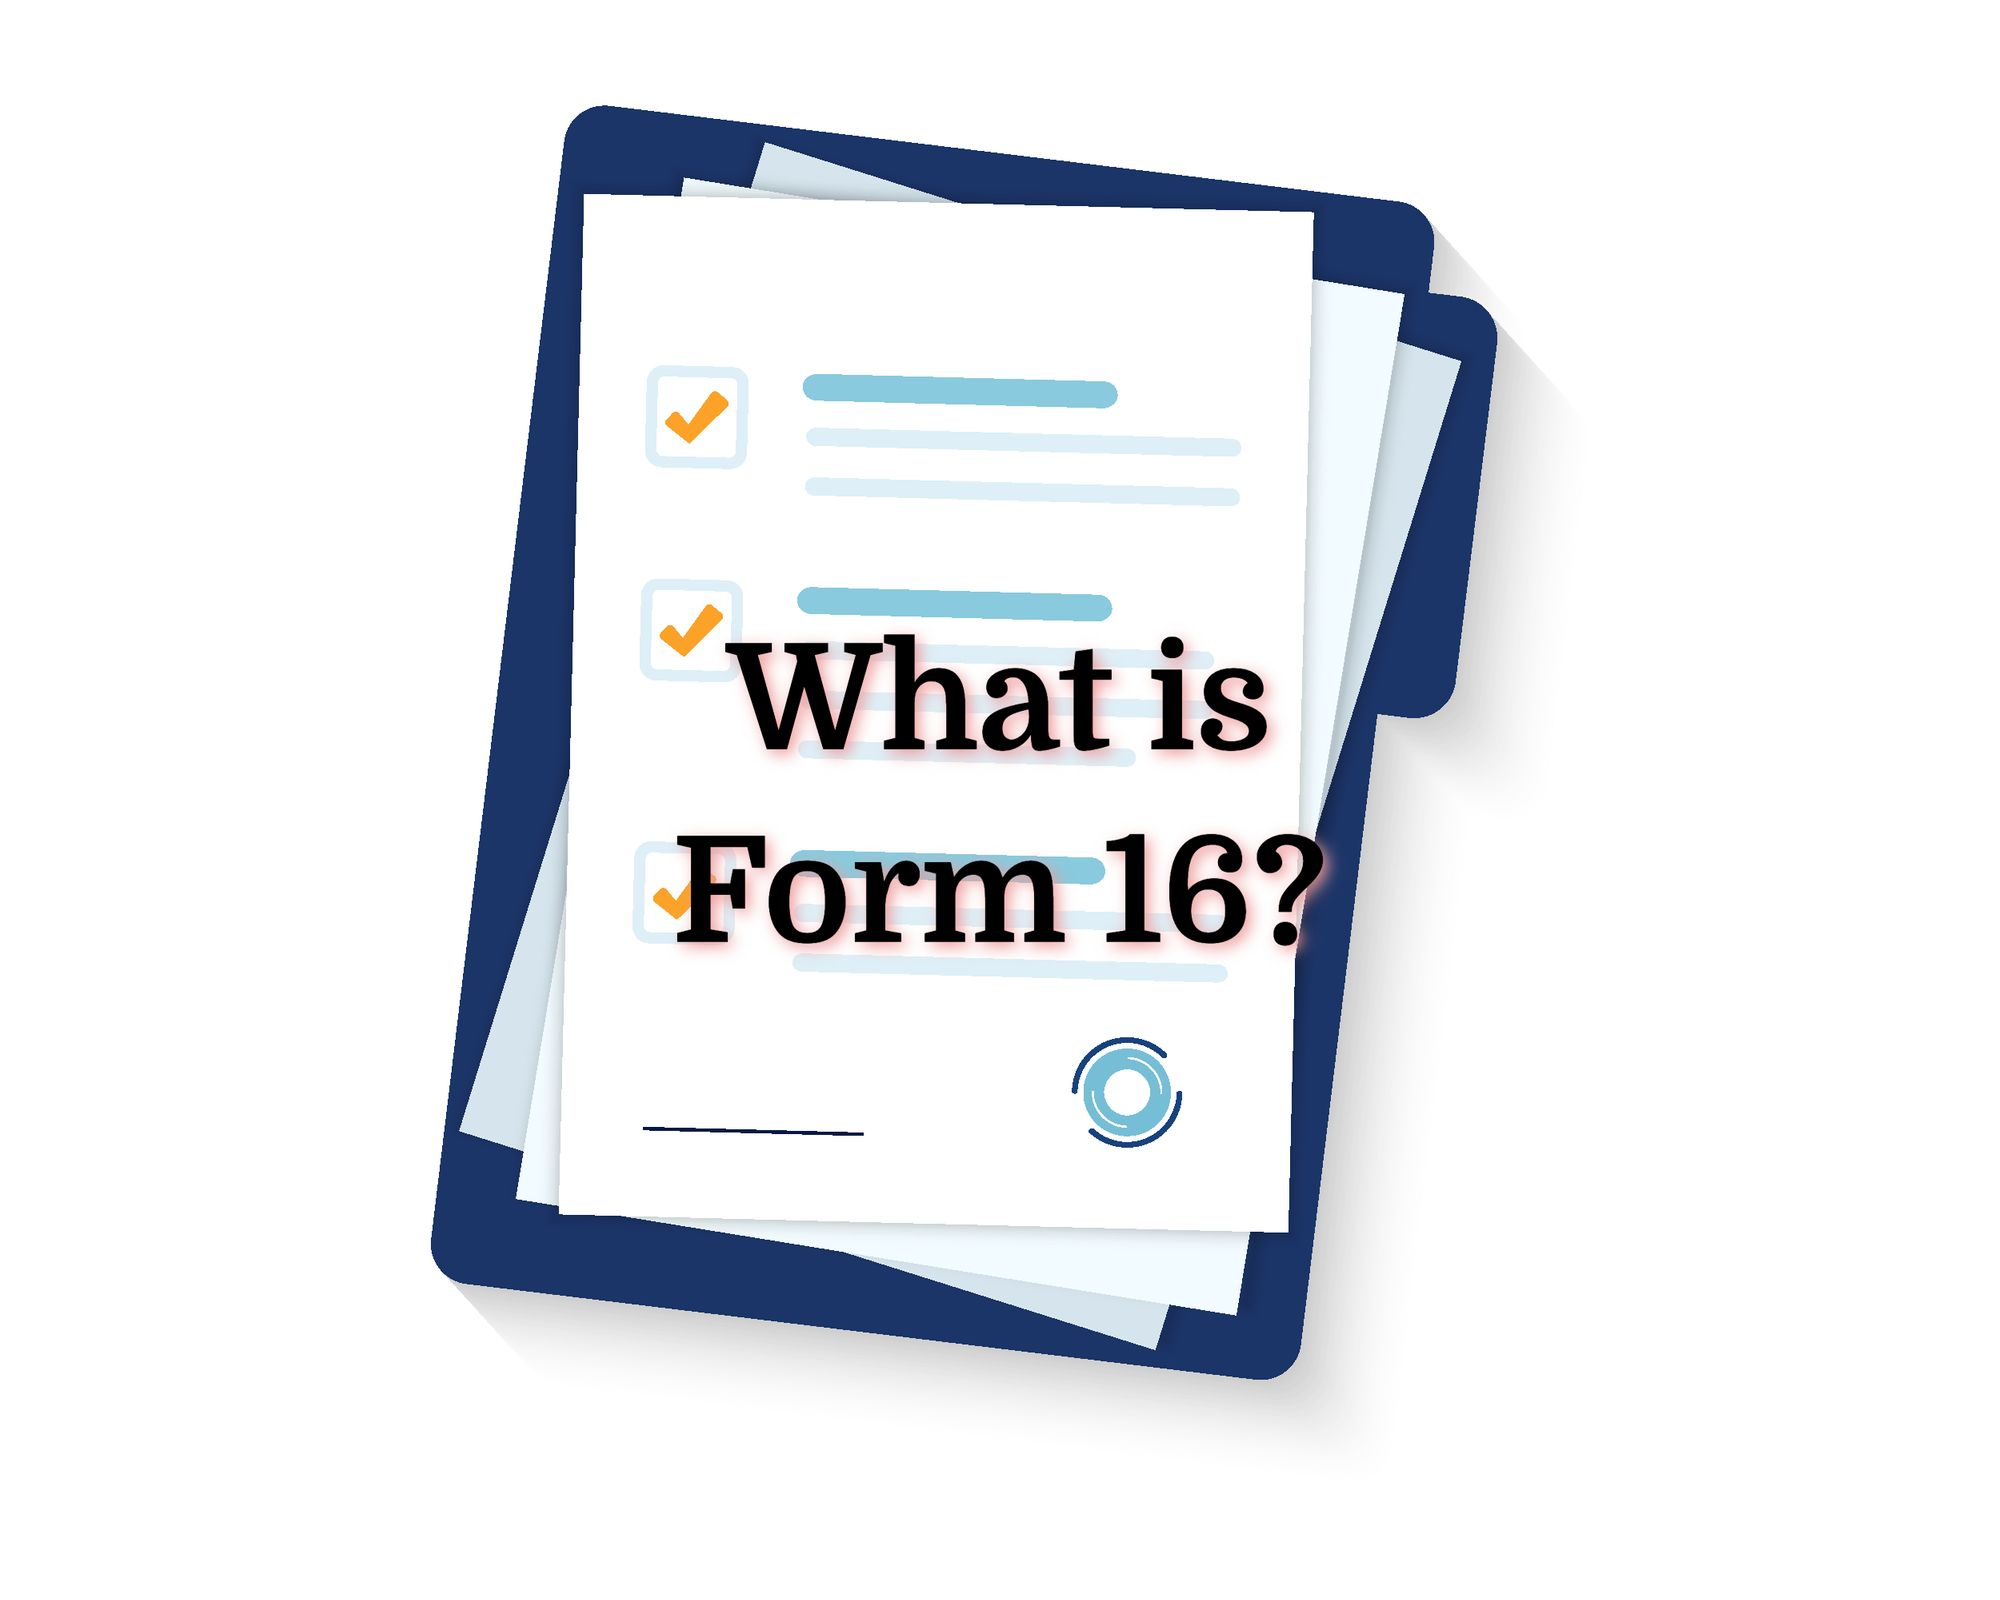 What is Form 16? Here's All You Need To Know About Form 16